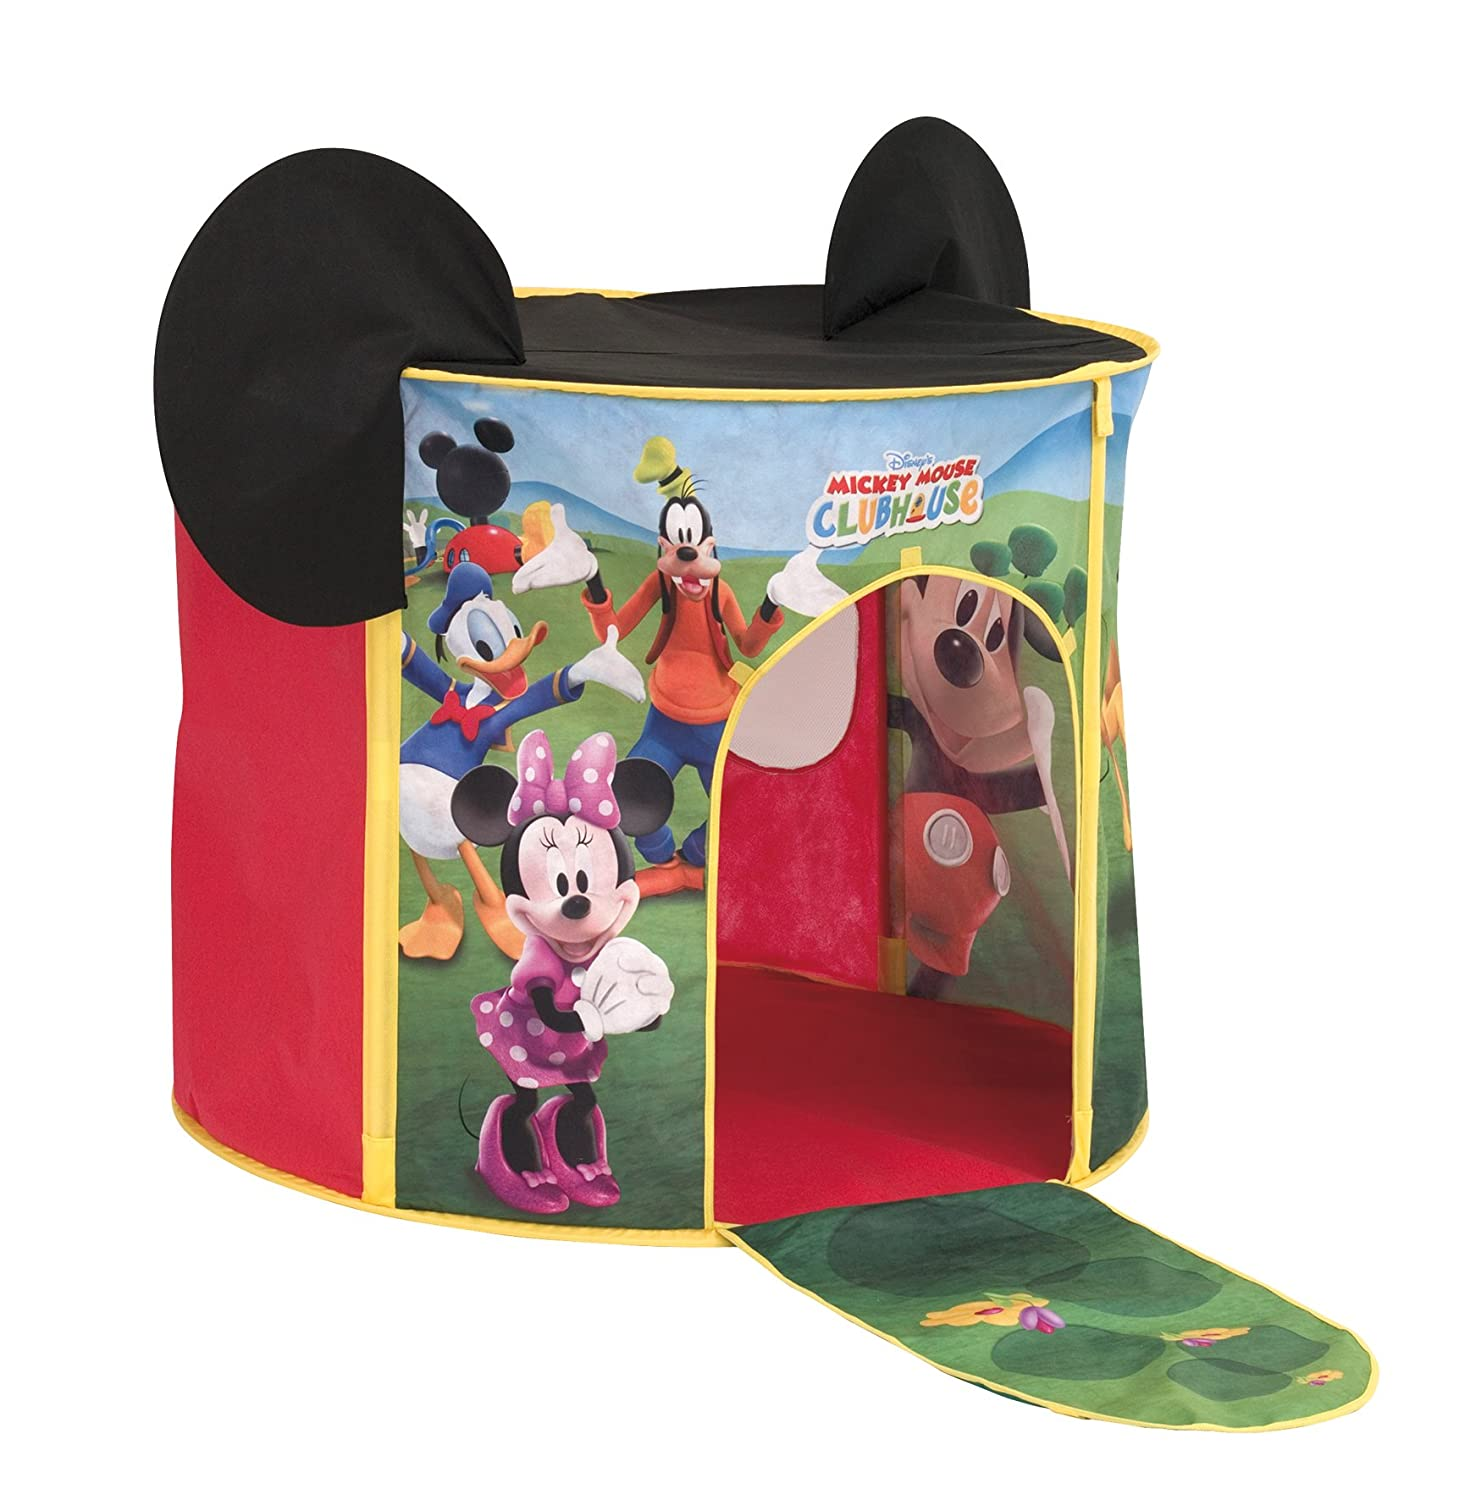 sc 1 st  Amazon UK & Mickey Mouse Club House Play Tent: Amazon.co.uk: Toys u0026 Games